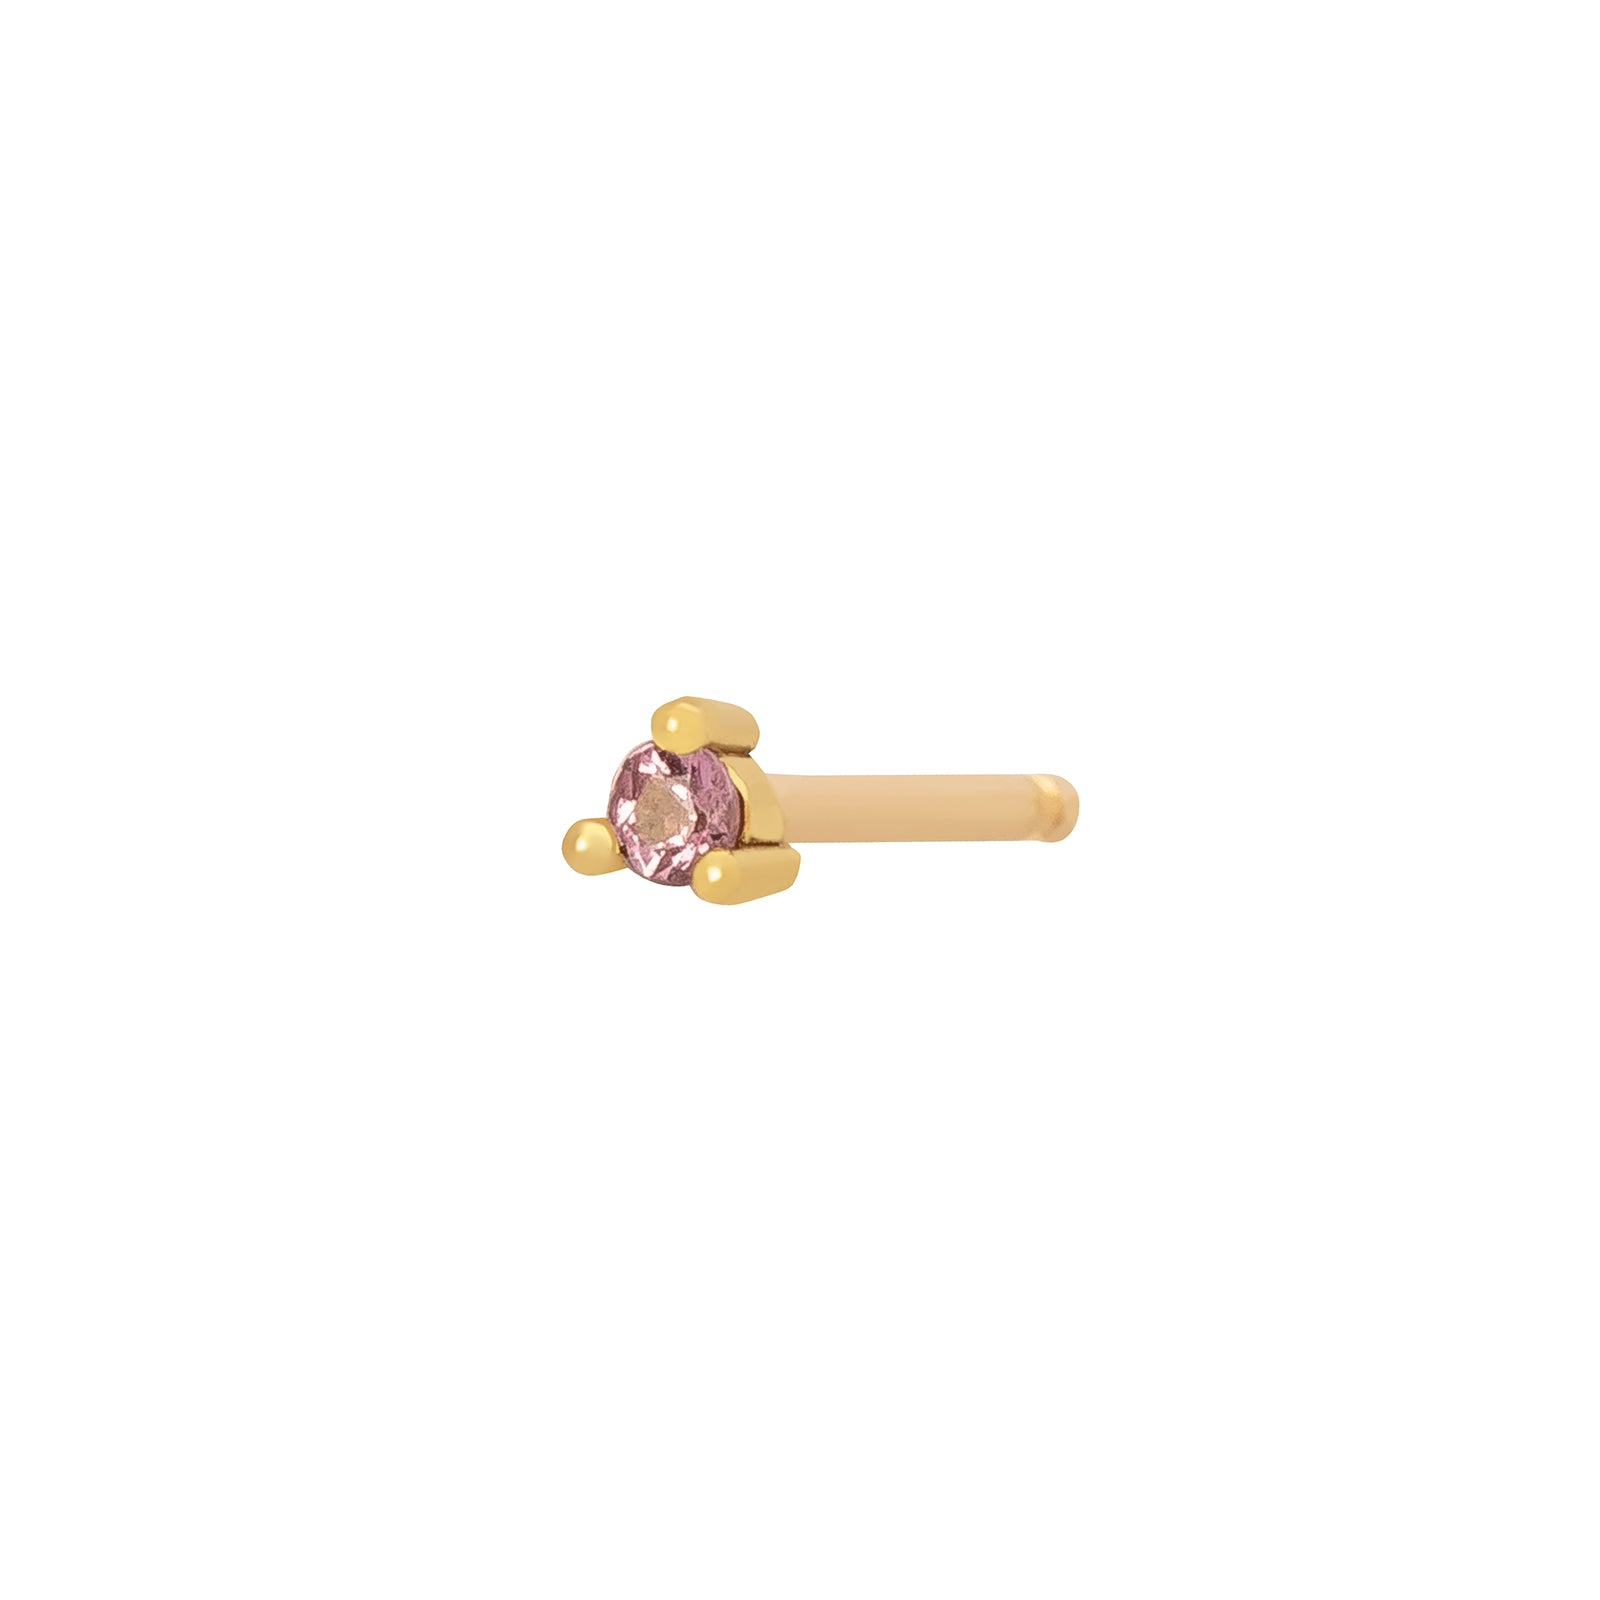 Lizzie Mandler Pink Sapphire Mini Stud - Earrings - Broken English Jewelry